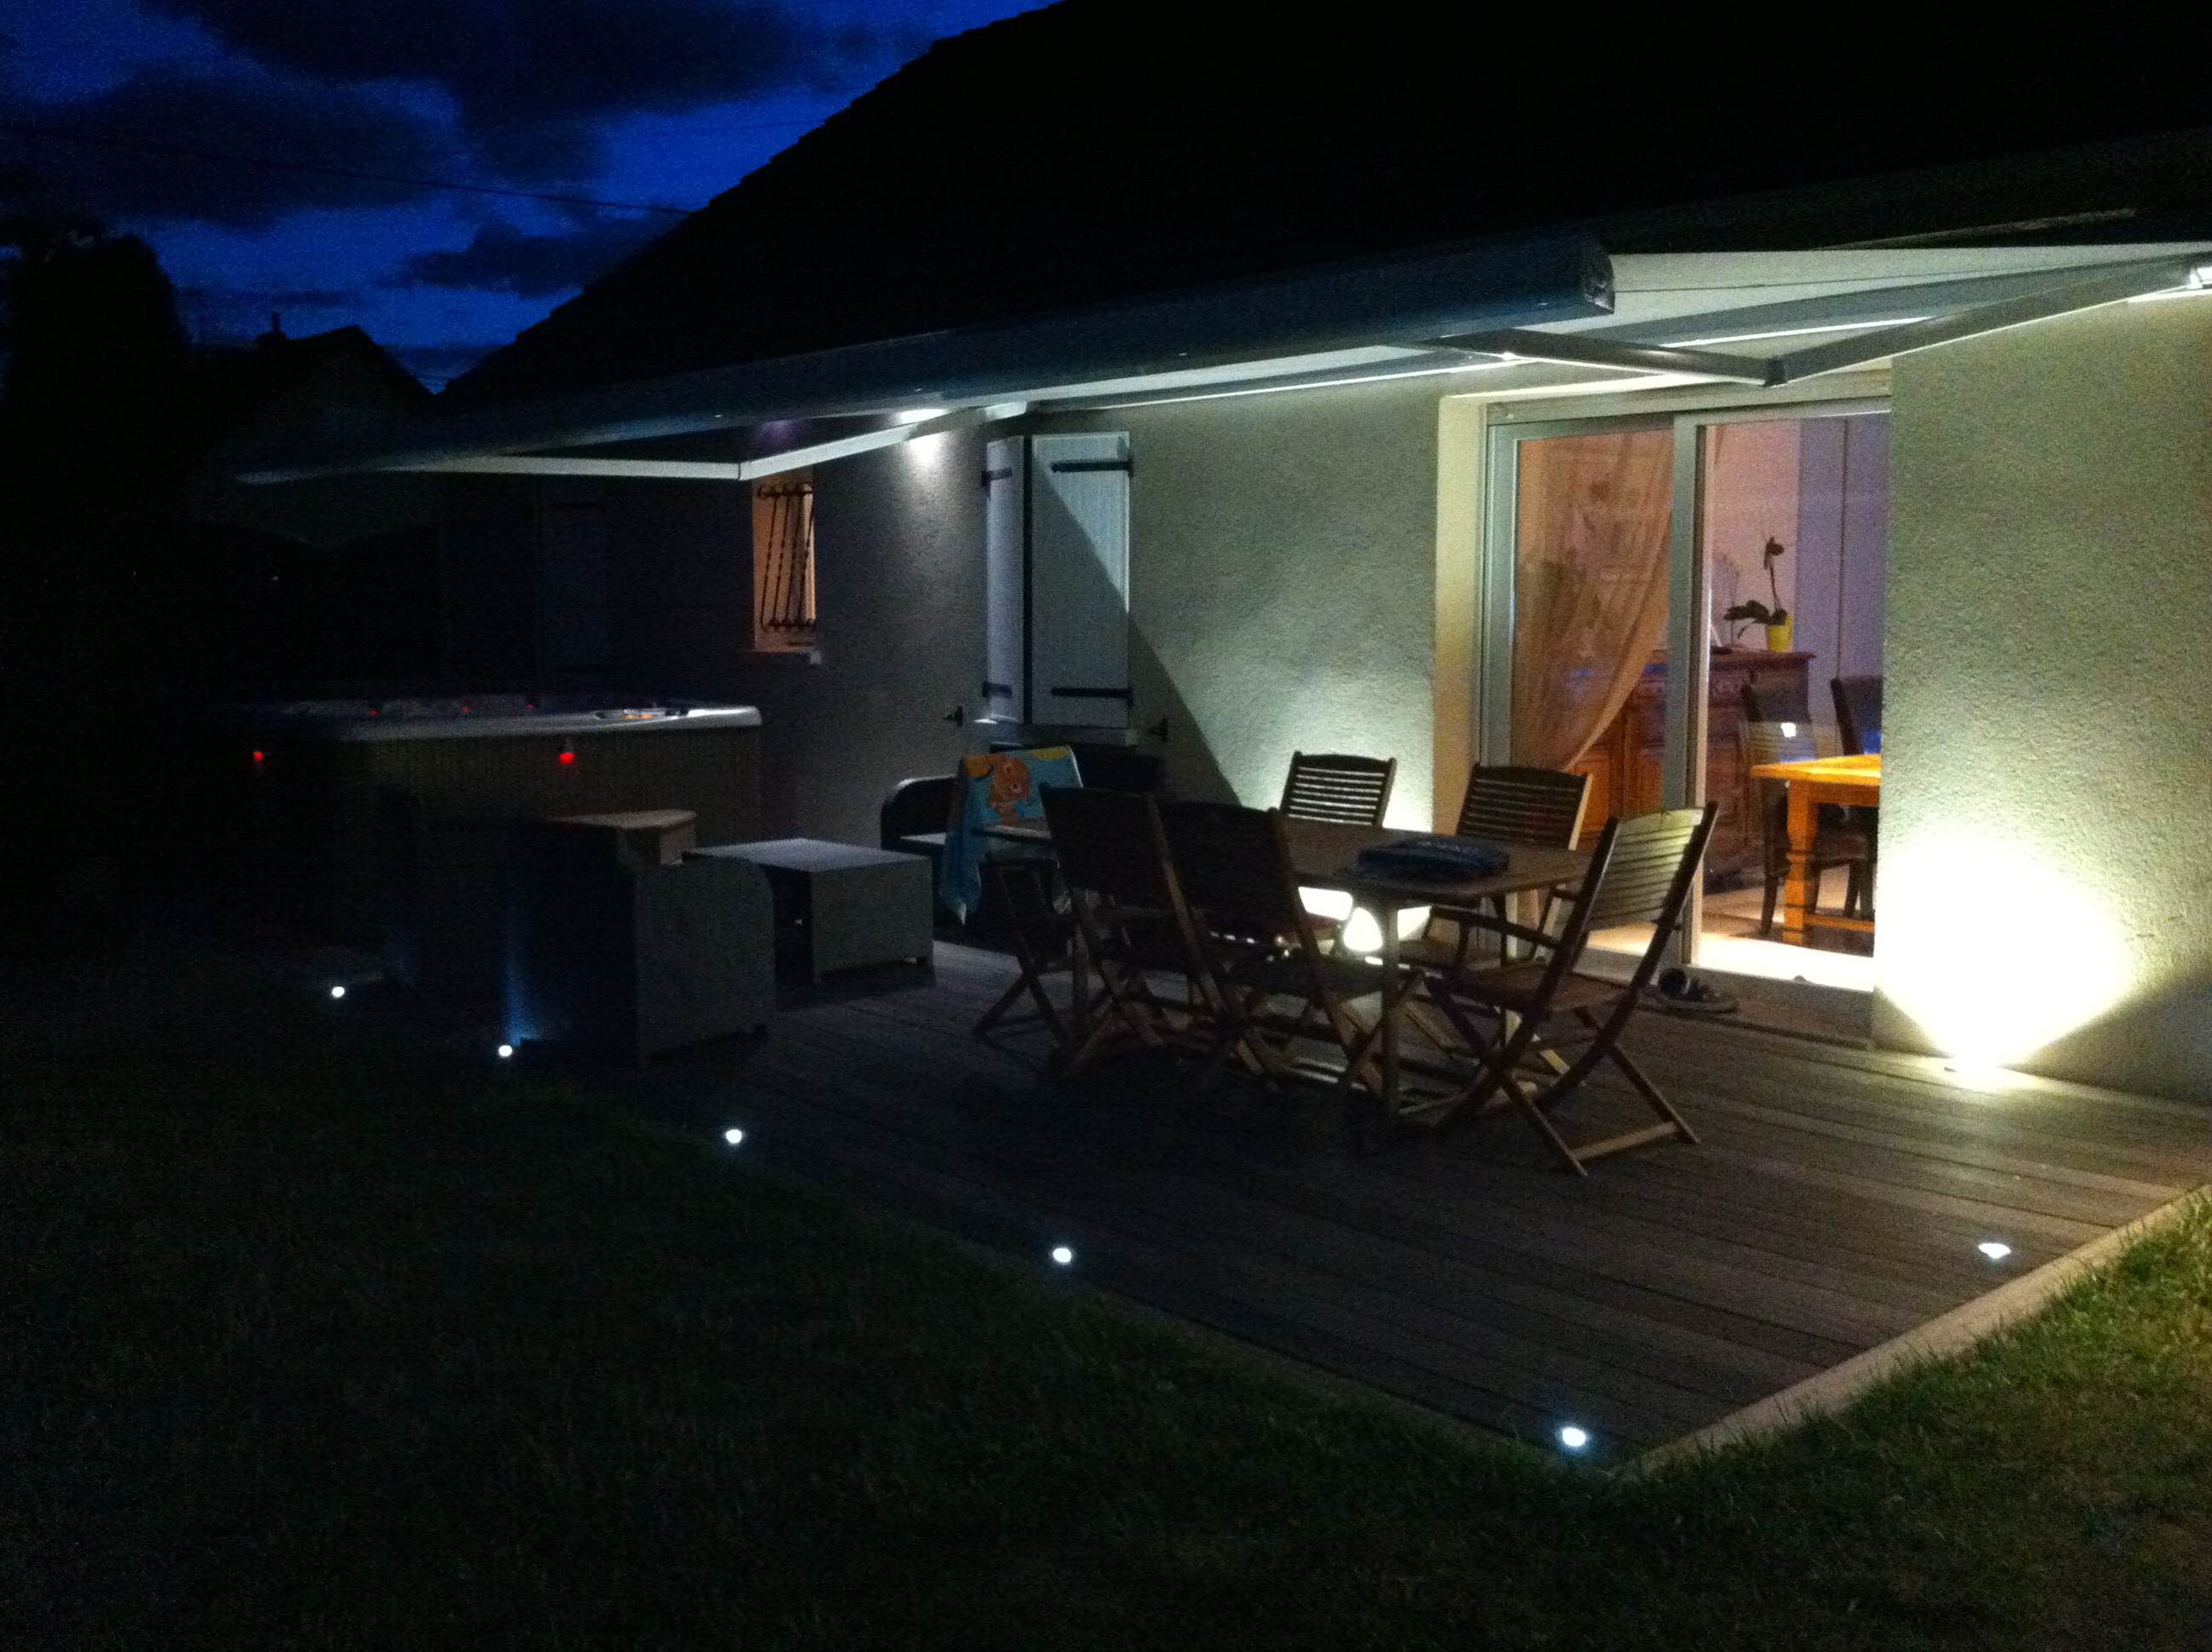 Clairage terrasse led eclairage ext rieur for Eclairage terrasse led exterieur